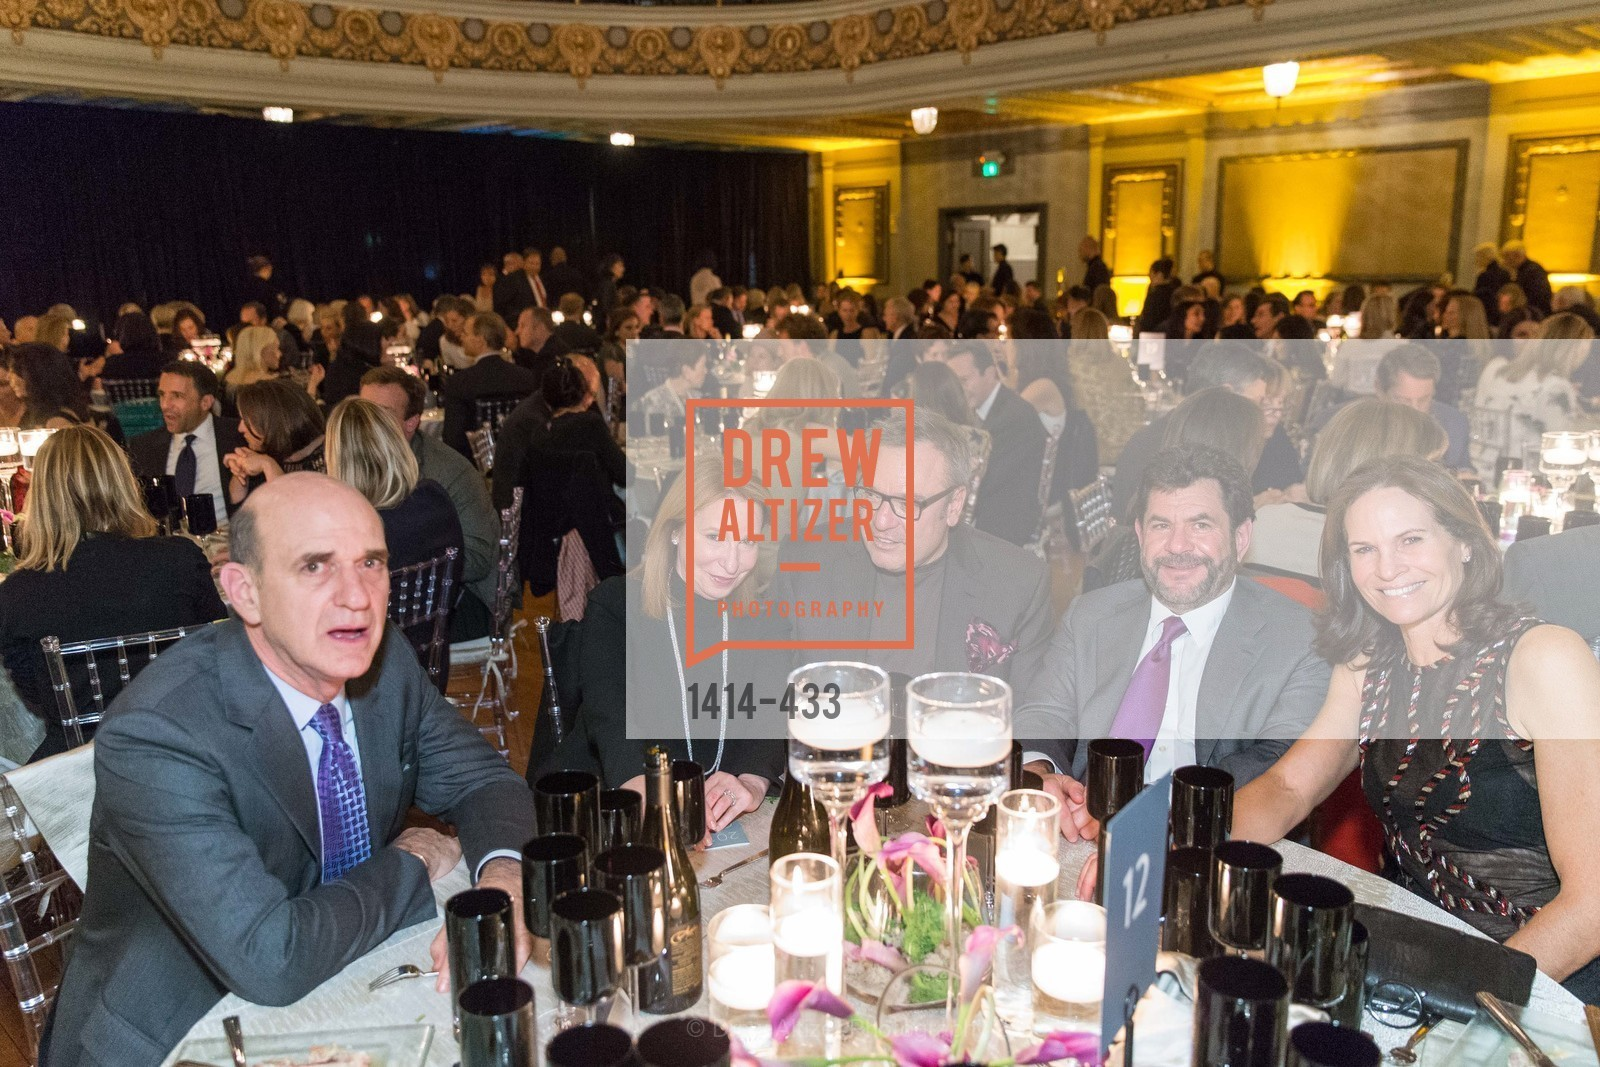 Bob Fisher, Lisa Pritzker, Stanlee Gatti, John Pritzker, Randi Fisher, SFMOMA Contemporary Vision Award, Regency Ballroom. 1300 Van Ness, November 3rd, 2015,Drew Altizer, Drew Altizer Photography, full-service event agency, private events, San Francisco photographer, photographer California